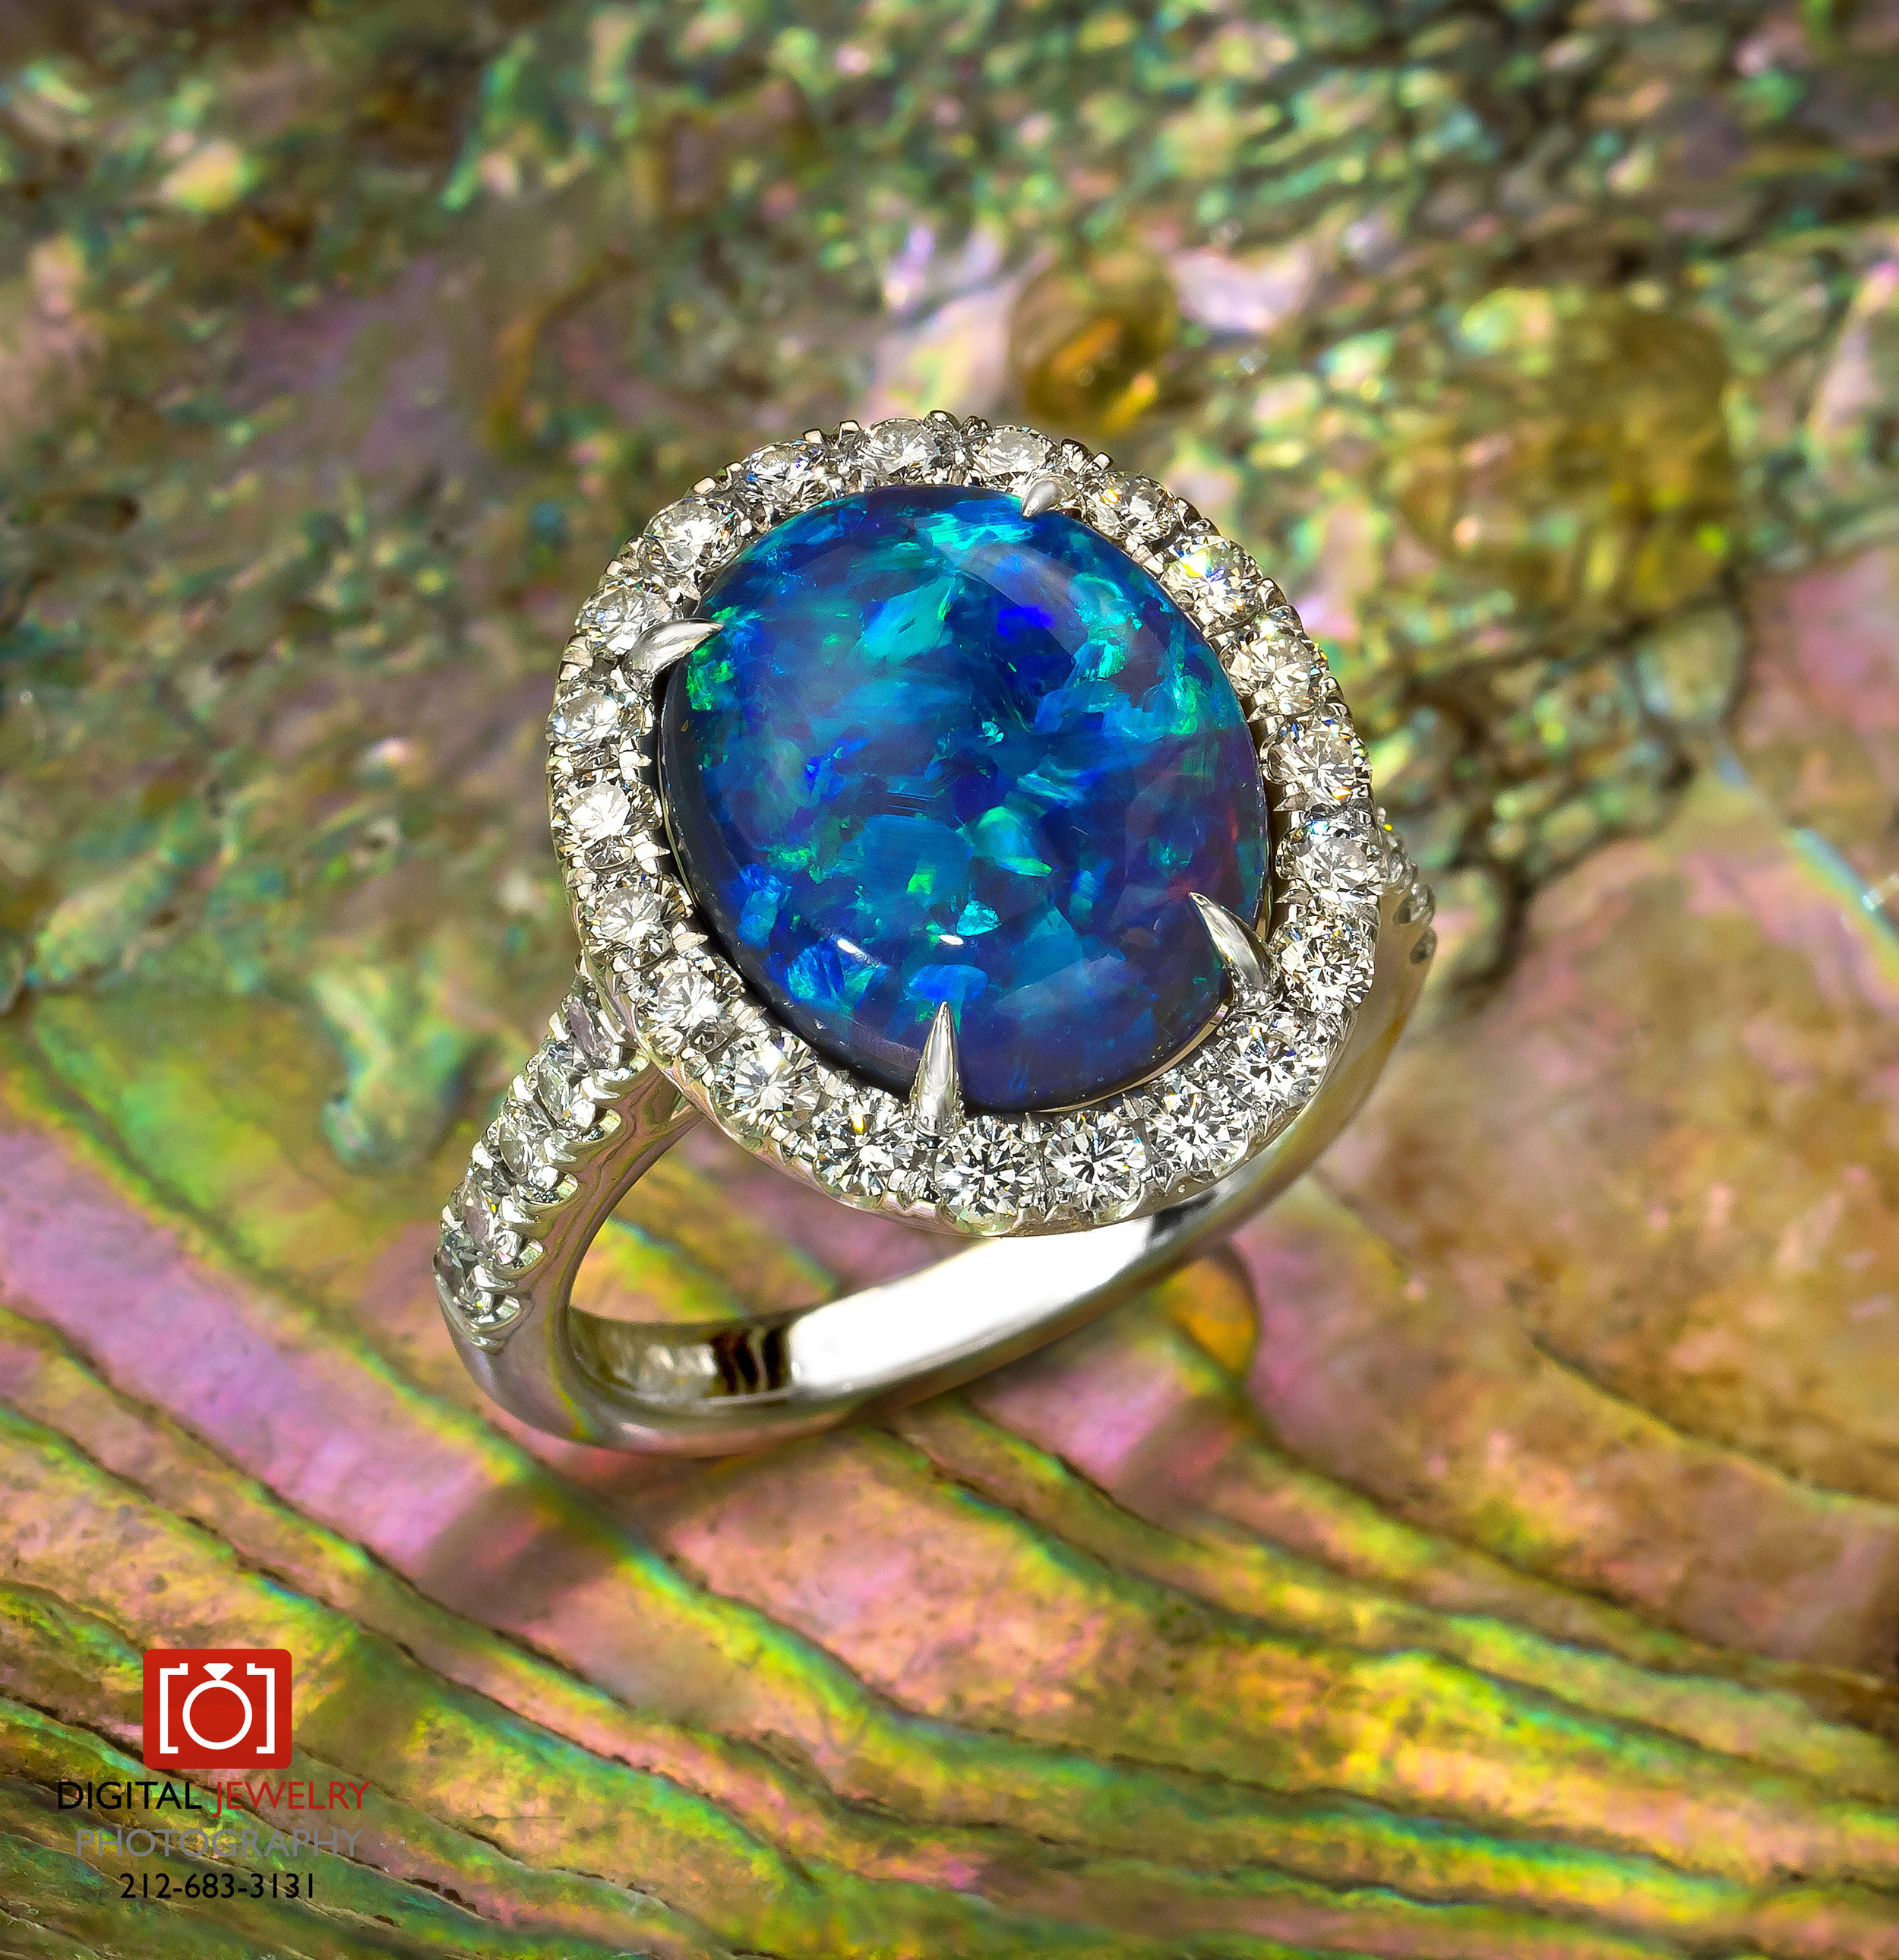 Blue Opal Ring Lifestyle.jpg